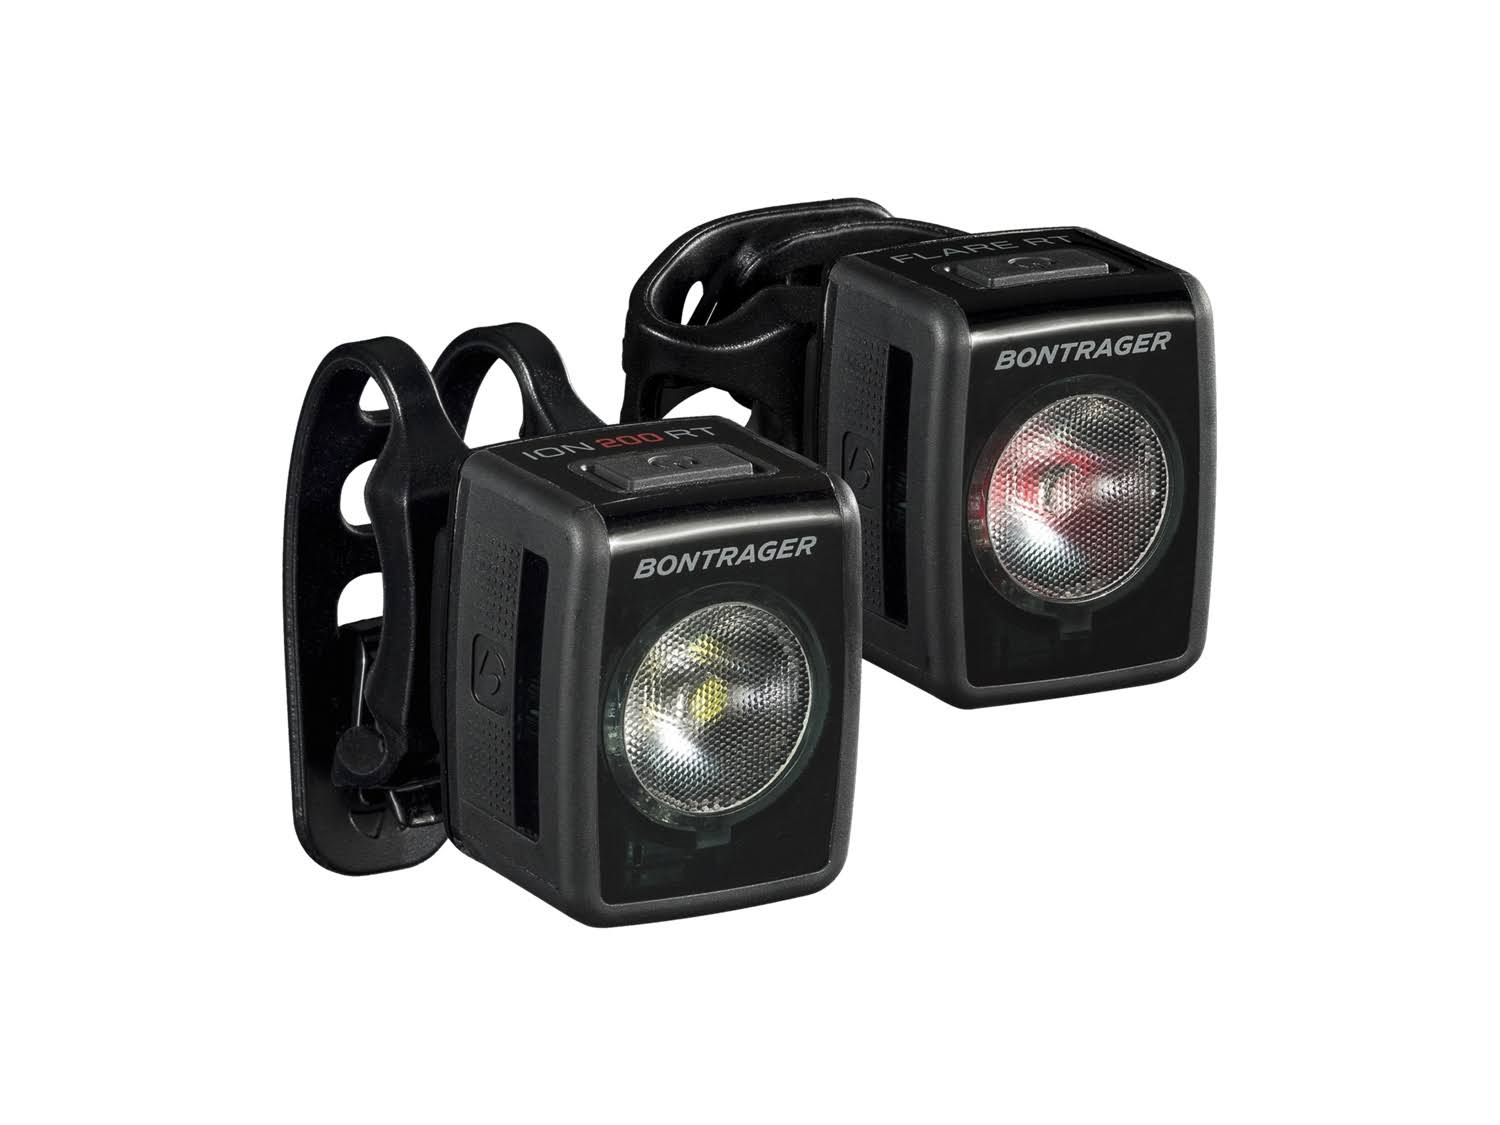 Bontrager Ion 200 RT Flare RT Light Set